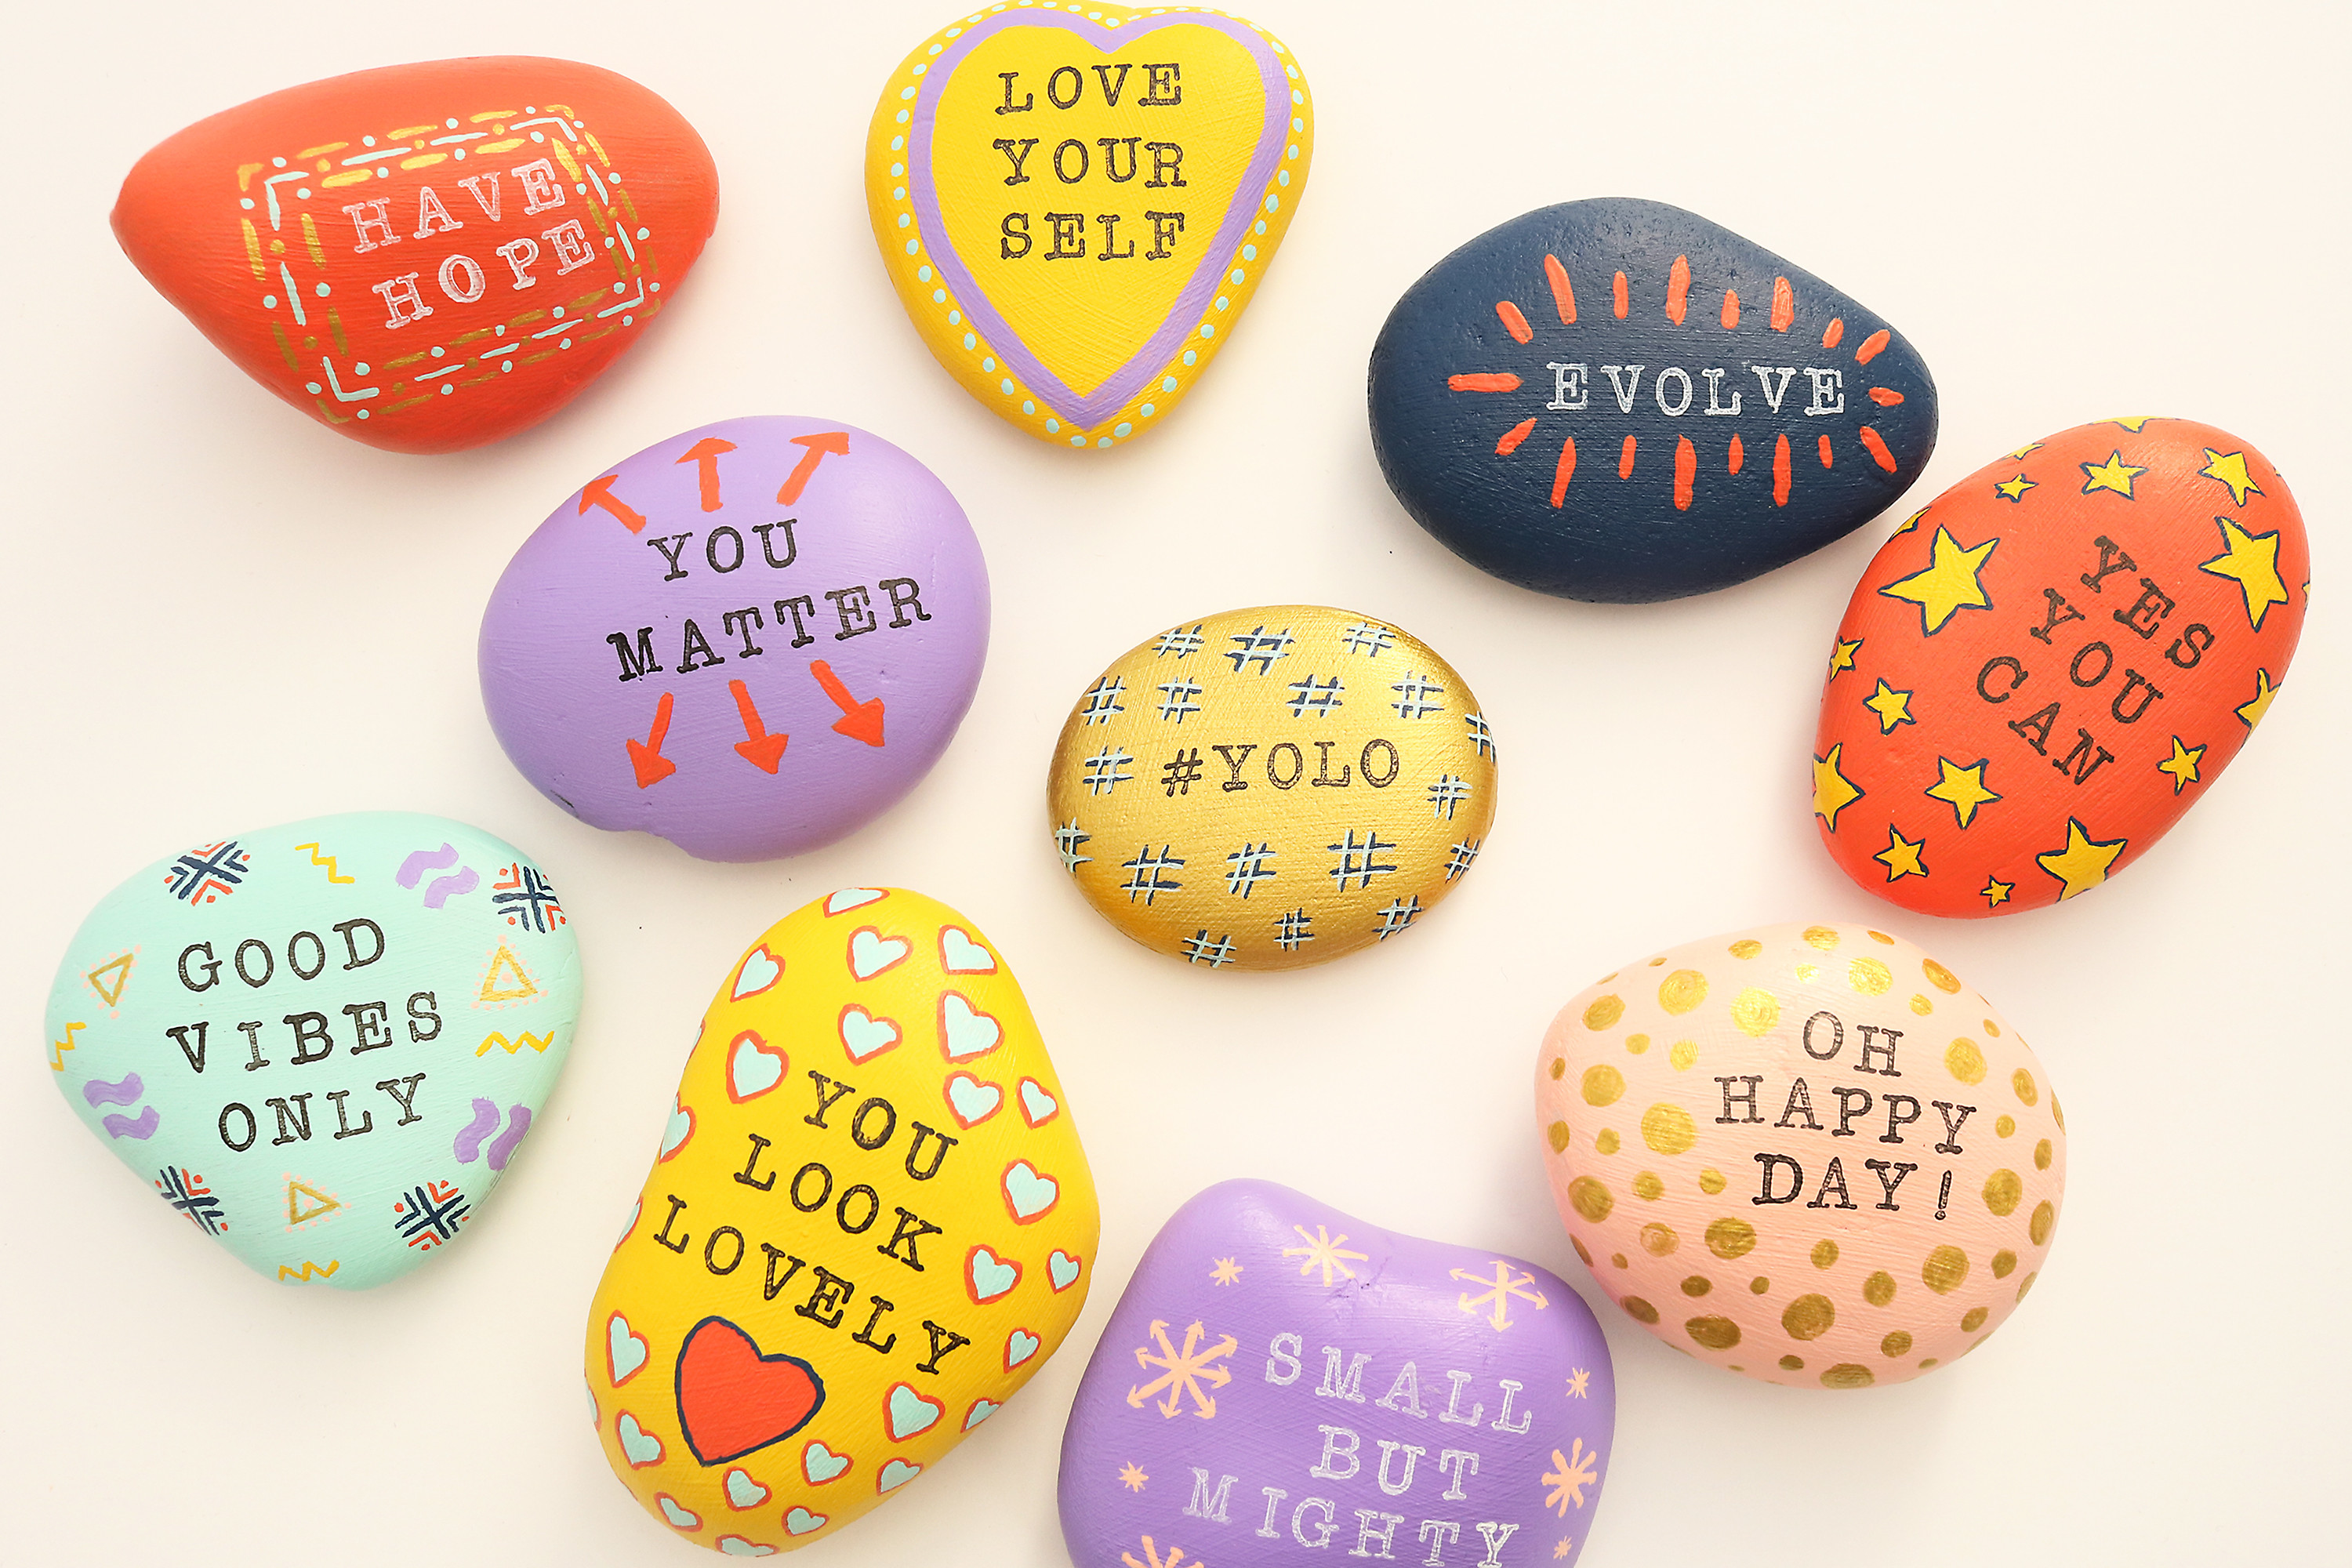 Kindness Rocks Quotes  The Kindness Rocks Project RubberStamps Blog